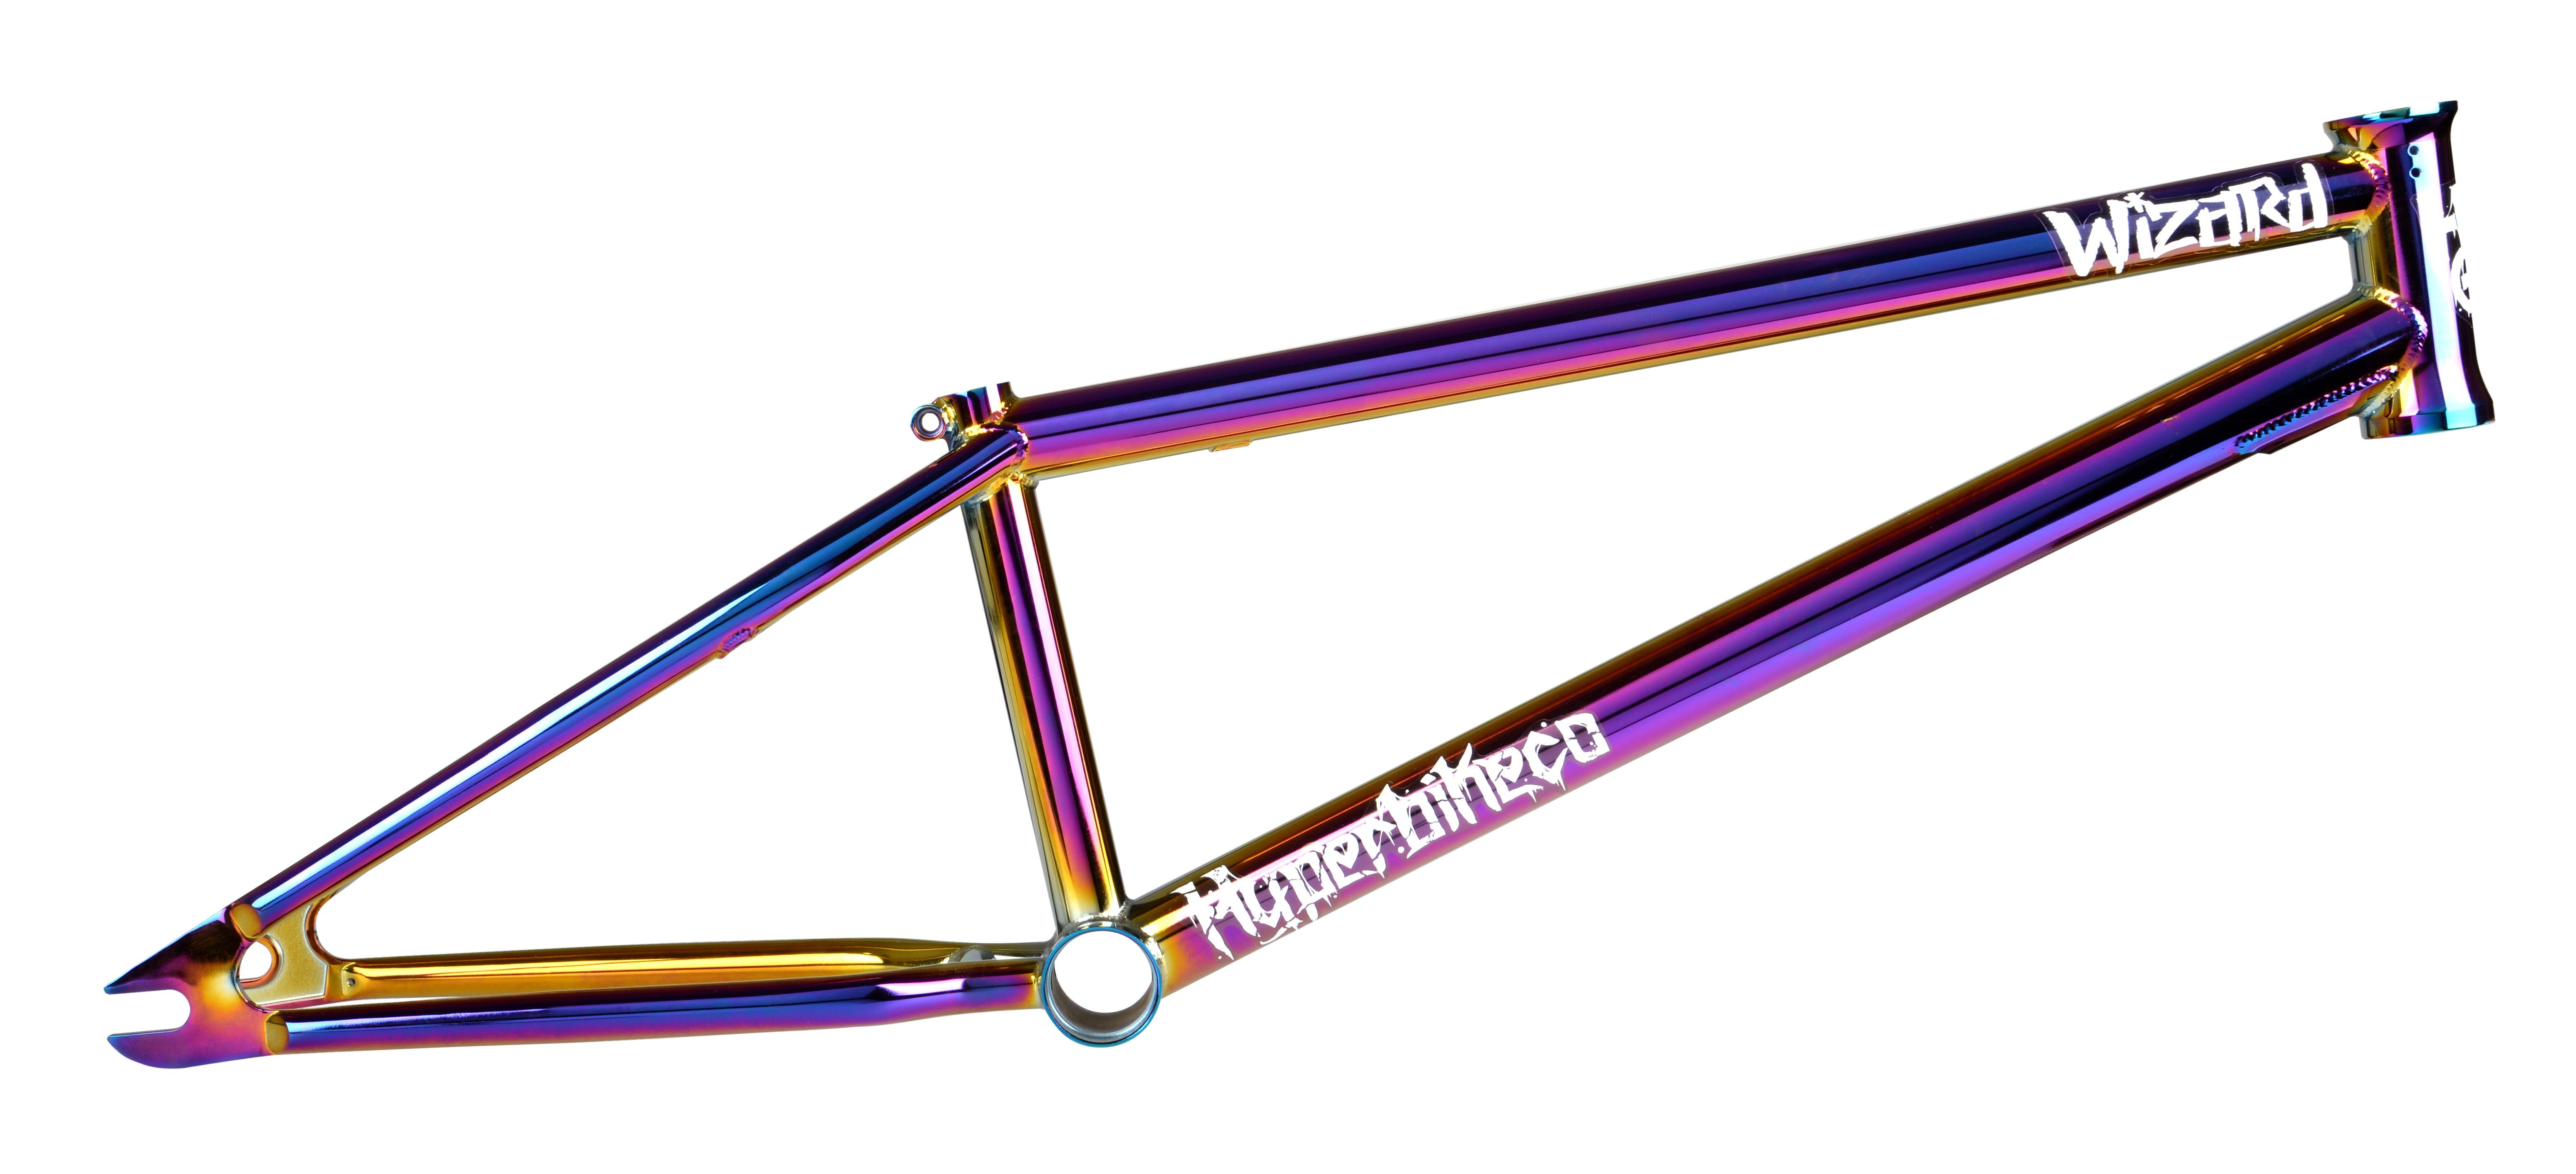 WIZARD – FRAME | Hyper Bicycles